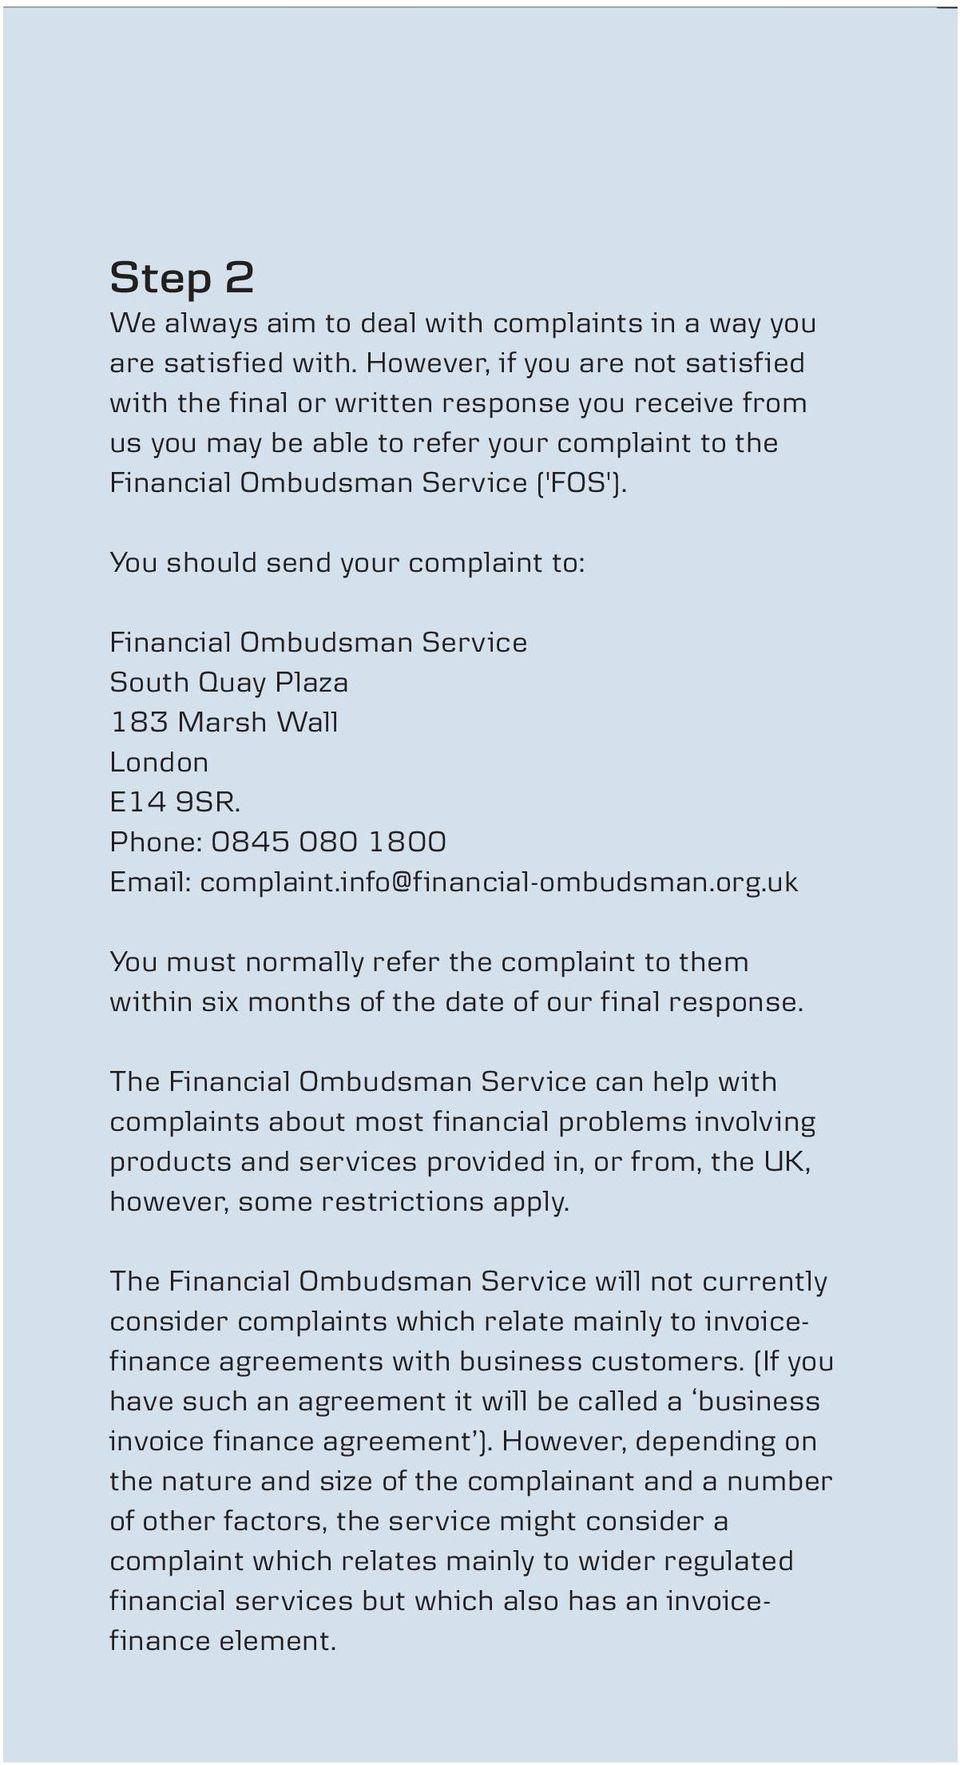 You should send your complaint to: Financial Ombudsman Service South Quay Plaza 183 Marsh Wall London E14 9SR. Phone: 0845 080 1800 Email: complaint.info@financial-ombudsman.org.